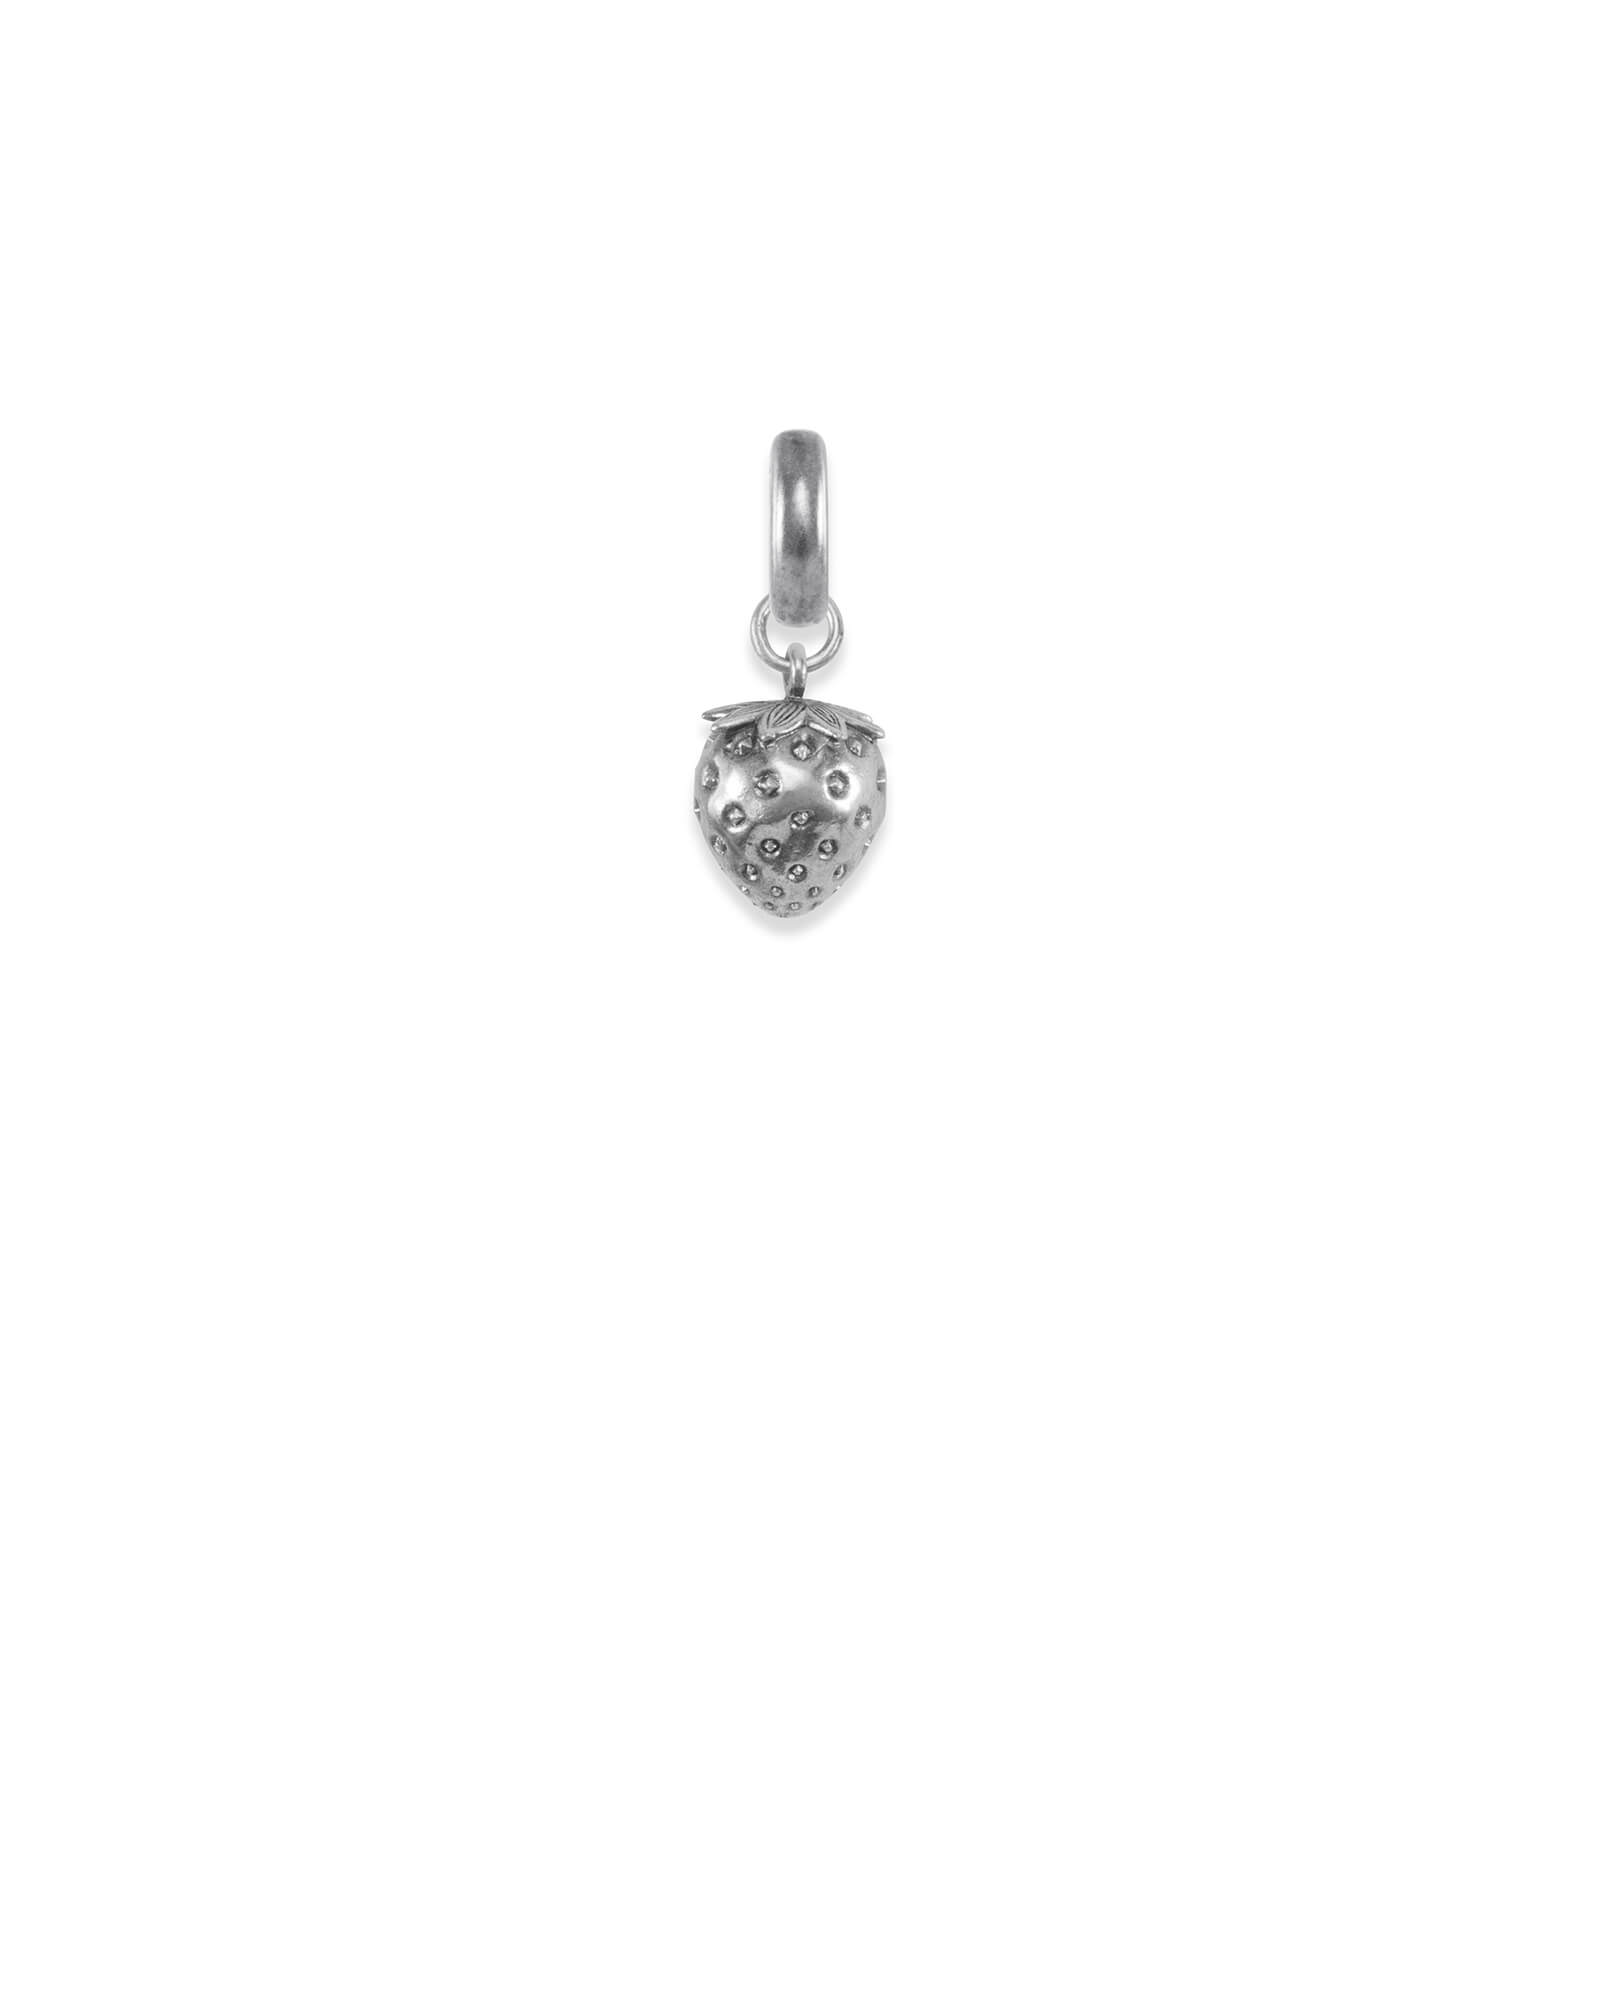 Delaware Strawberry Charm in Vintage Silver